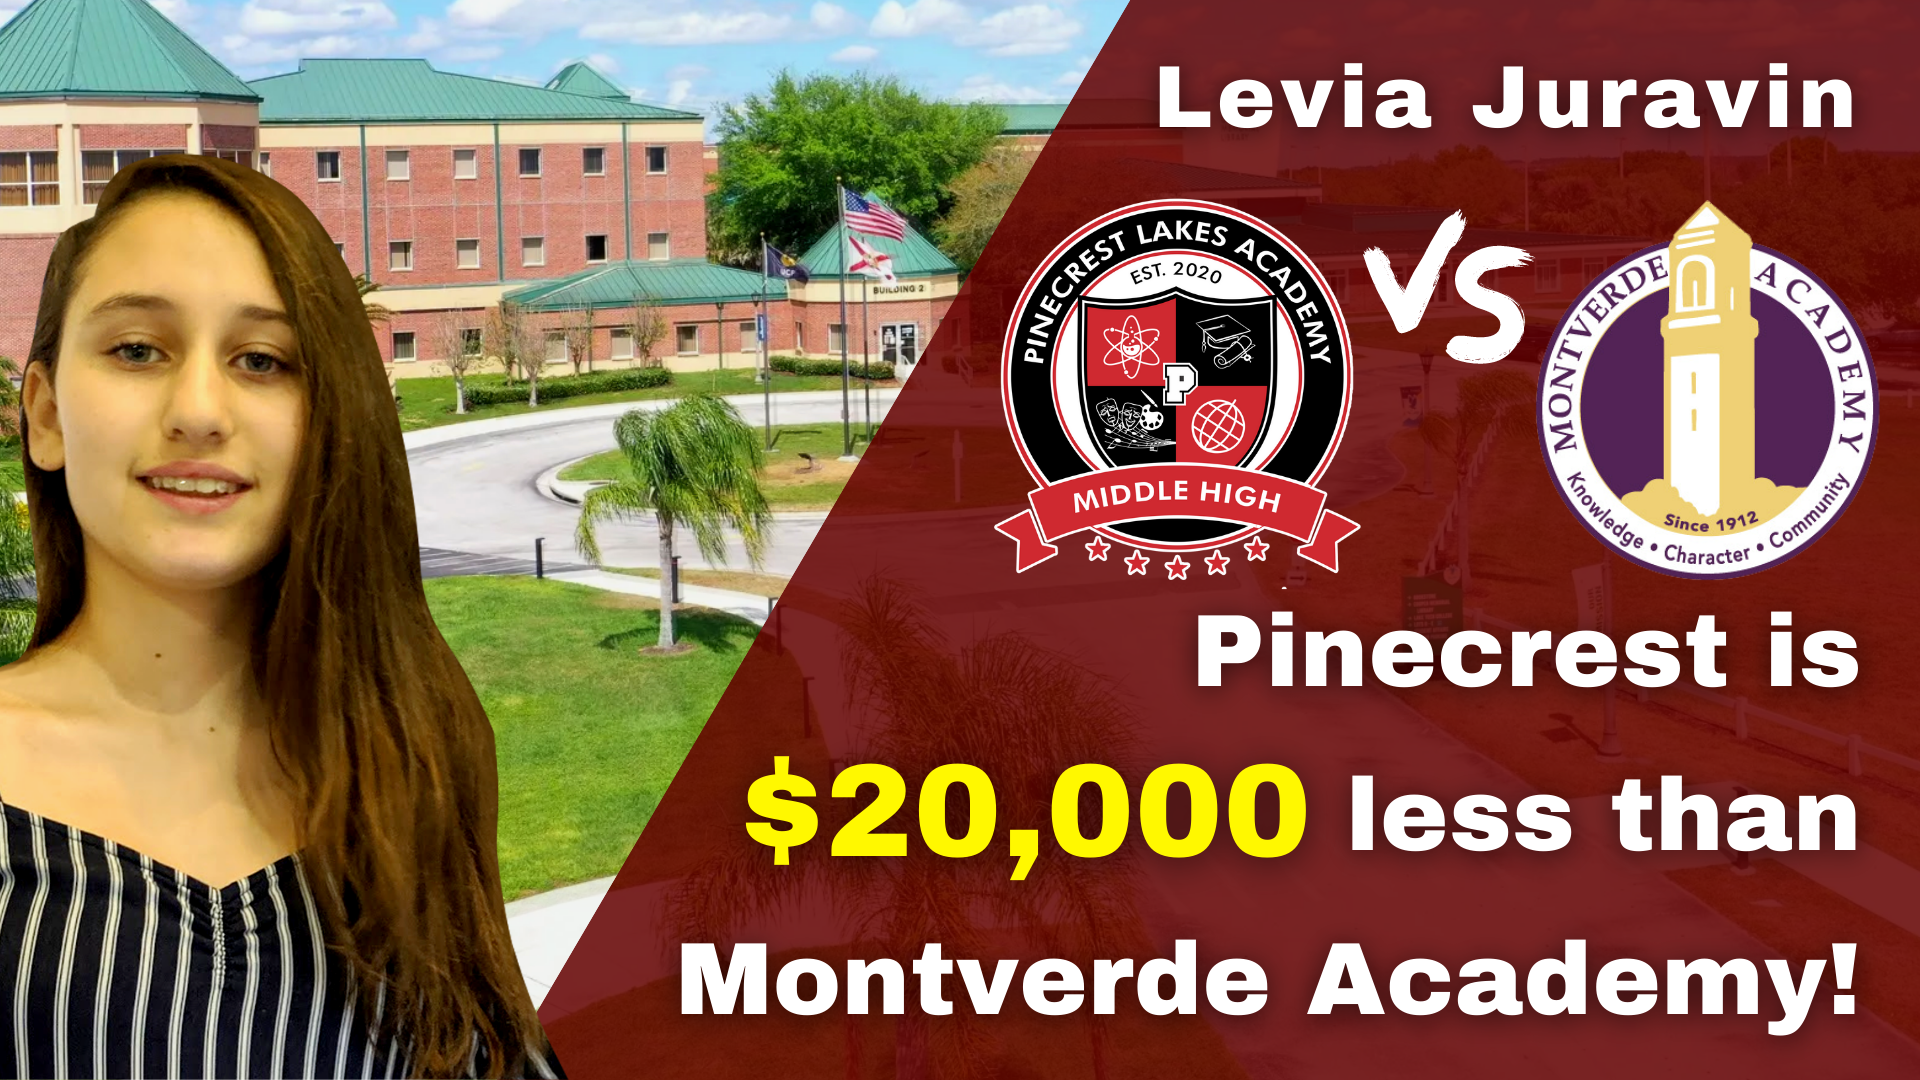 LEVIA JURAVIN CHOSE PINECREST LAKES ACADEMY OVER MONTVERDE ACADEMY TO SAVE $20,000